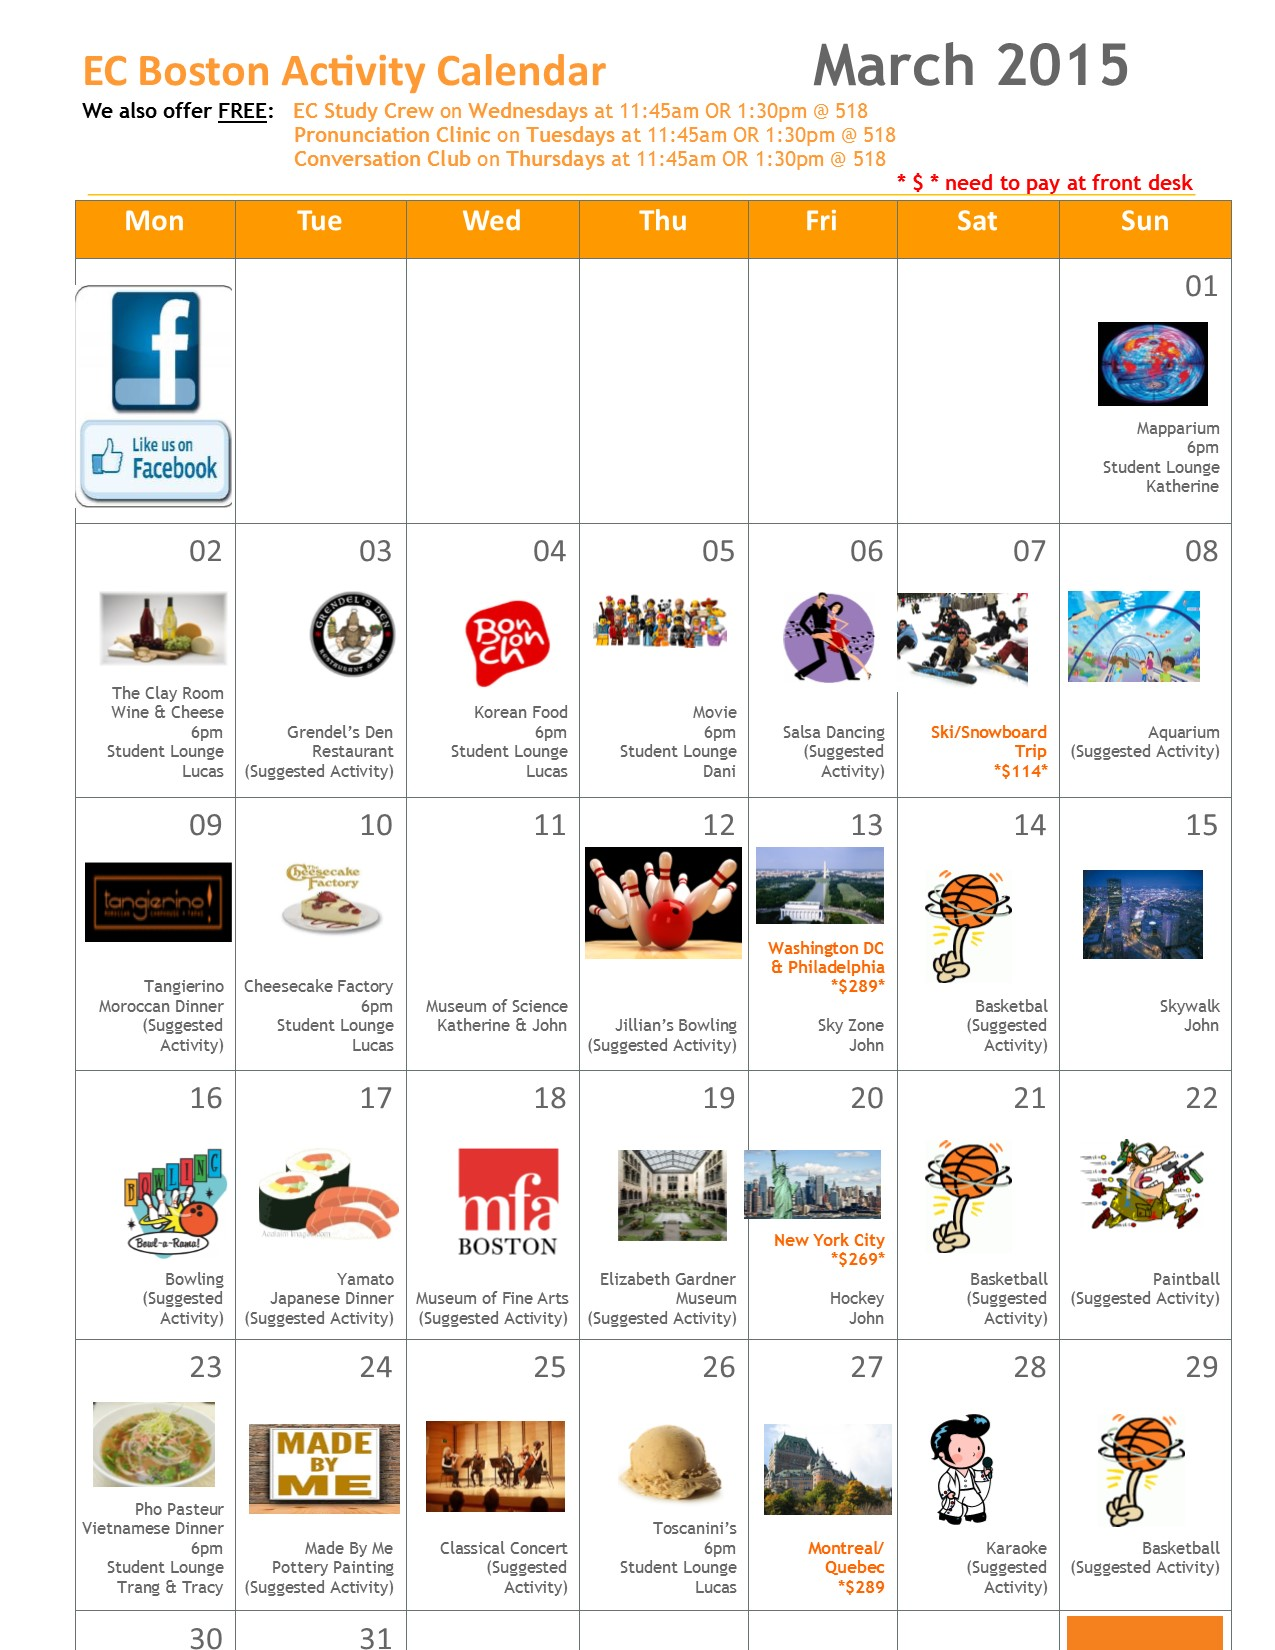 EC Boston's March Activity Calendar